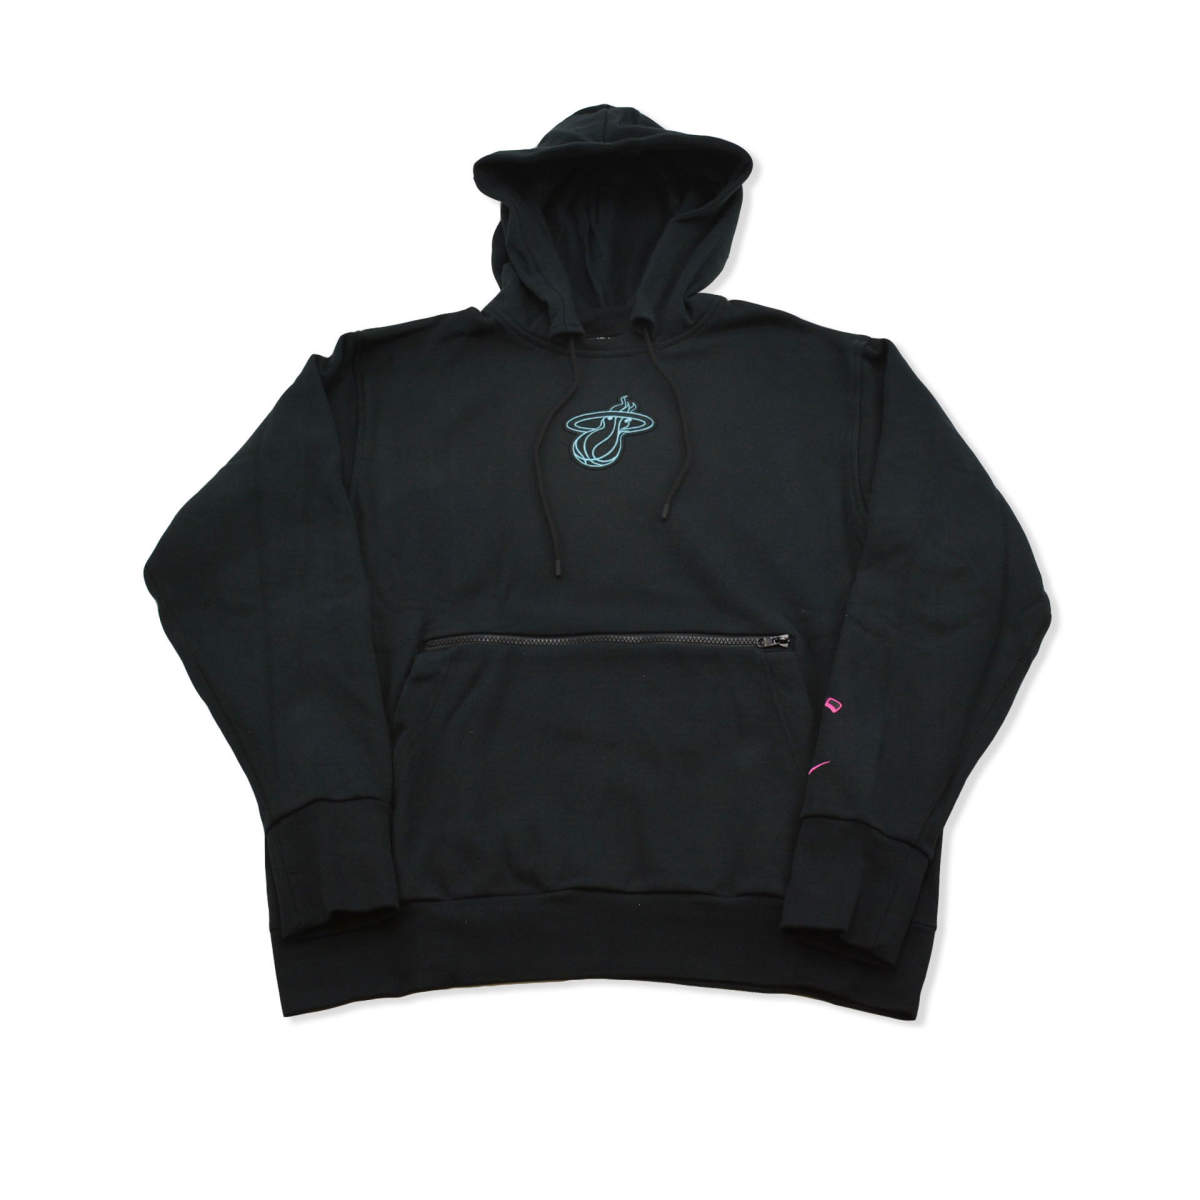 Miami heat ce courtside hoodie